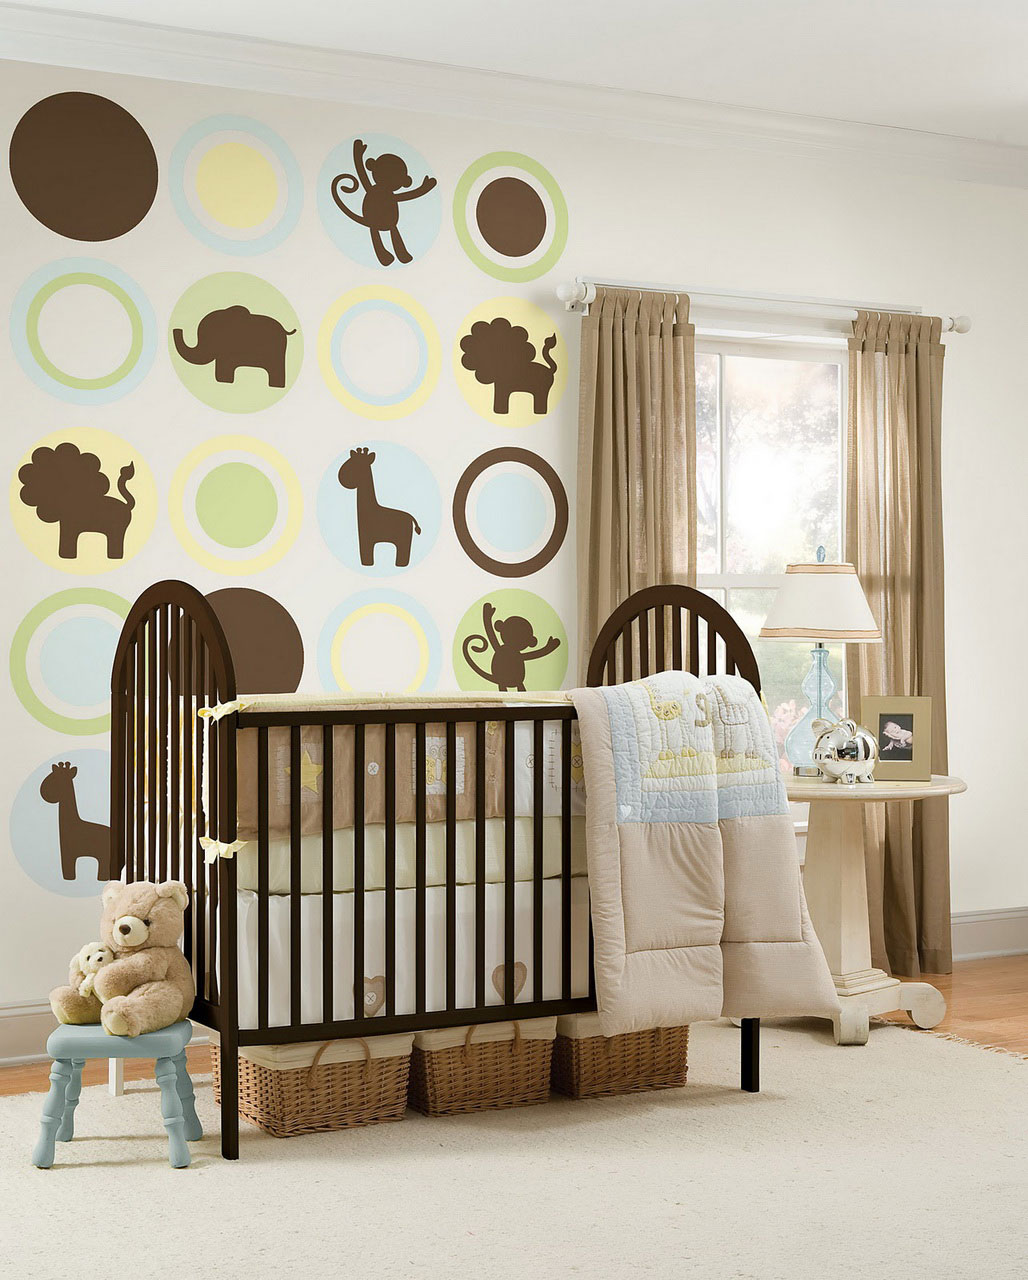 Natural Baby Nursery Design Reveal: Dream Nursery For Your Baby